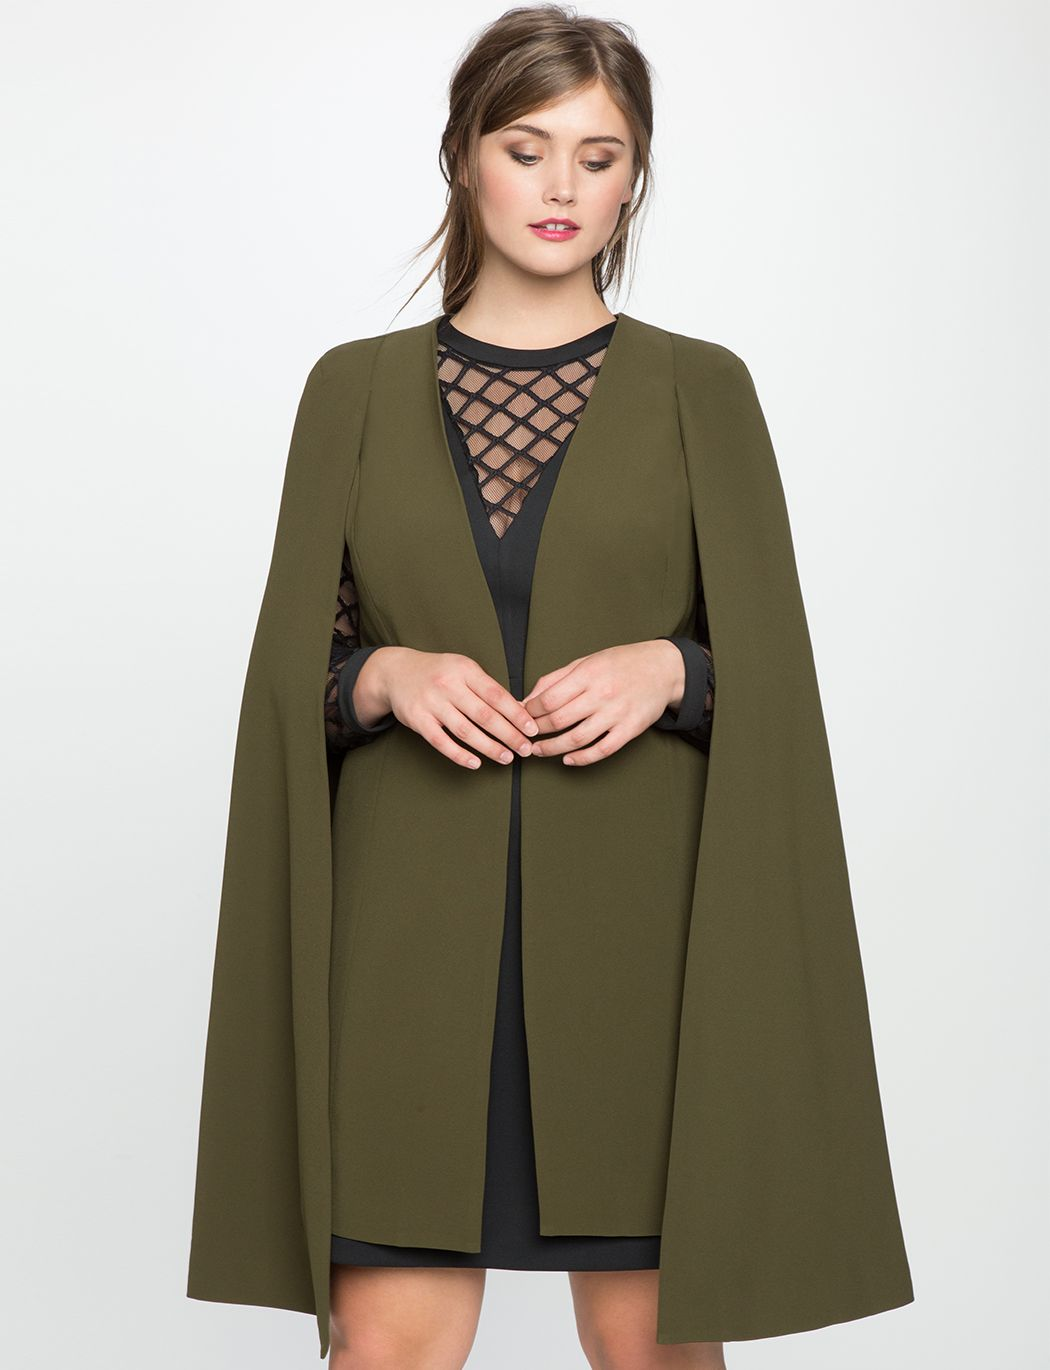 a55a2a78c9b78 Below The Knee Cape Jacket